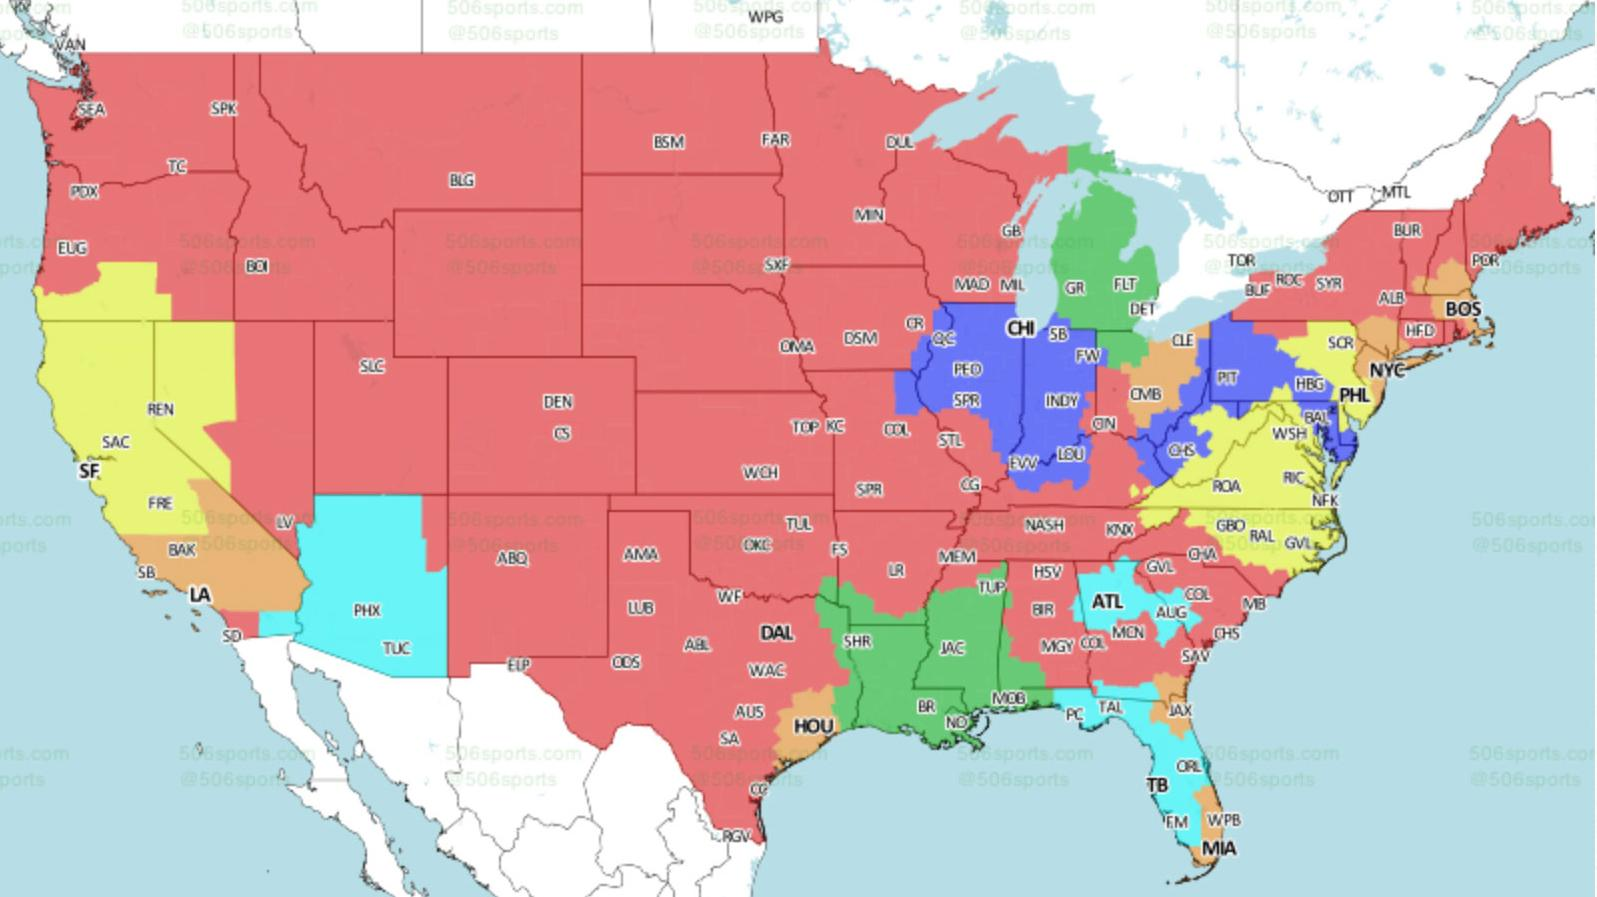 Find out where you can watch #GBvsMIN on Sunday.  TV map ��: https://t.co/edmU4FlDz6   #GoPackGo https://t.co/yLCpYfUCgs